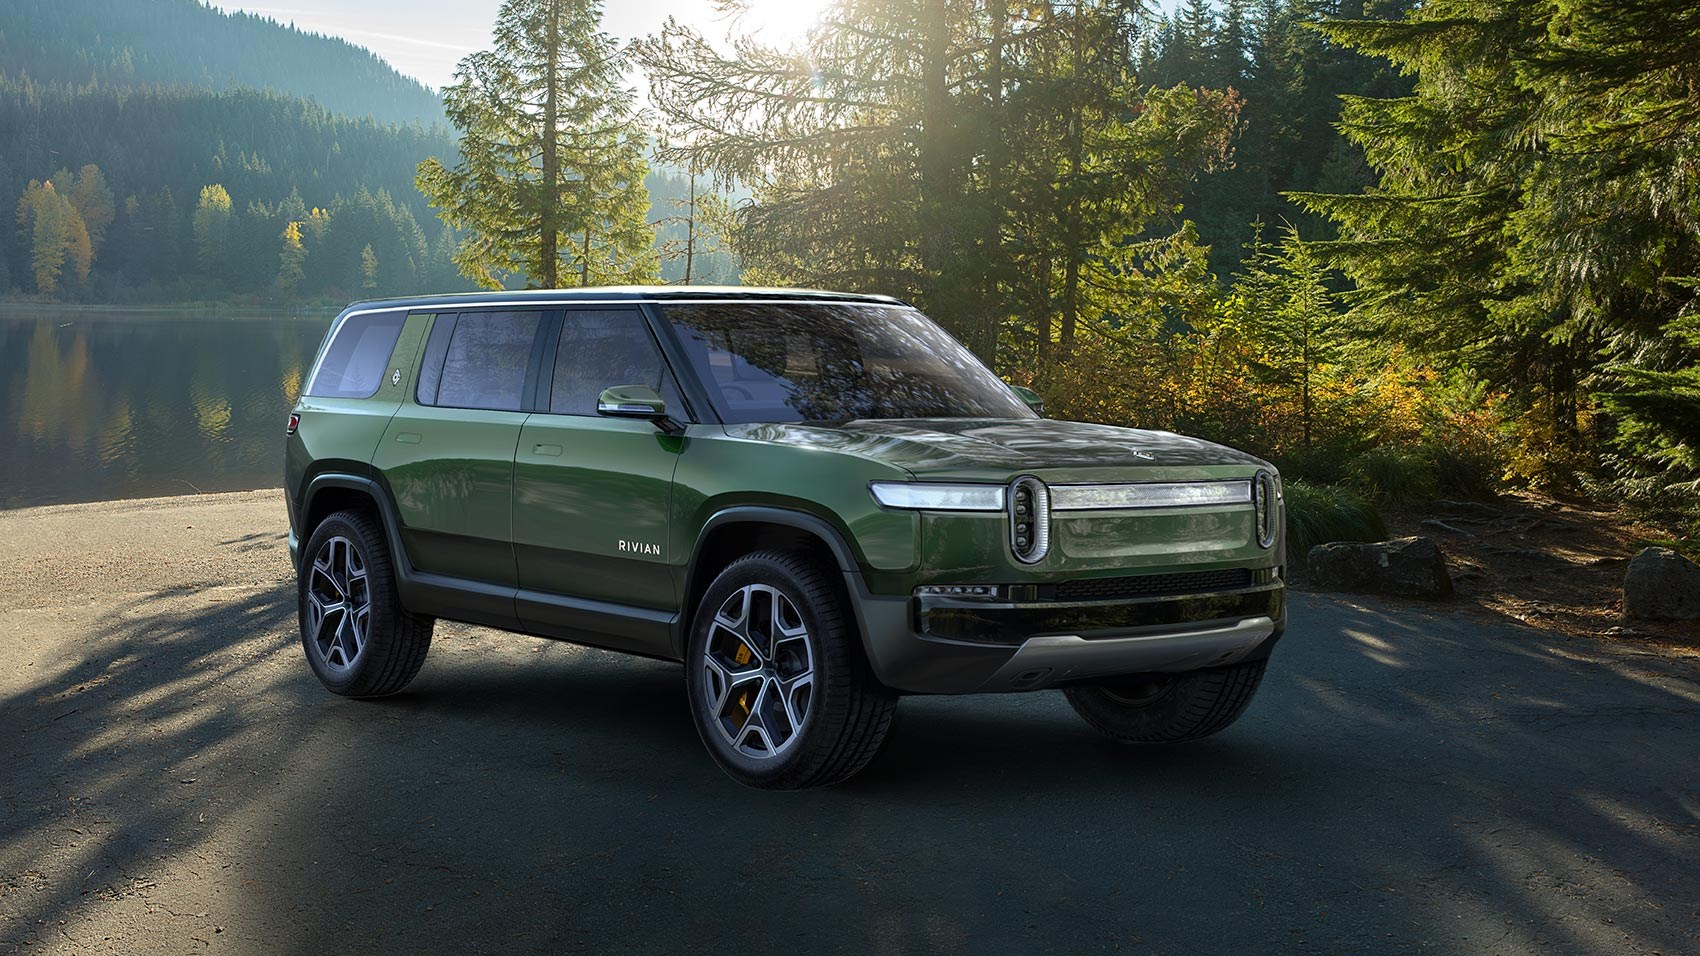 Ford invests $500 million in electric vehicle company Rivian